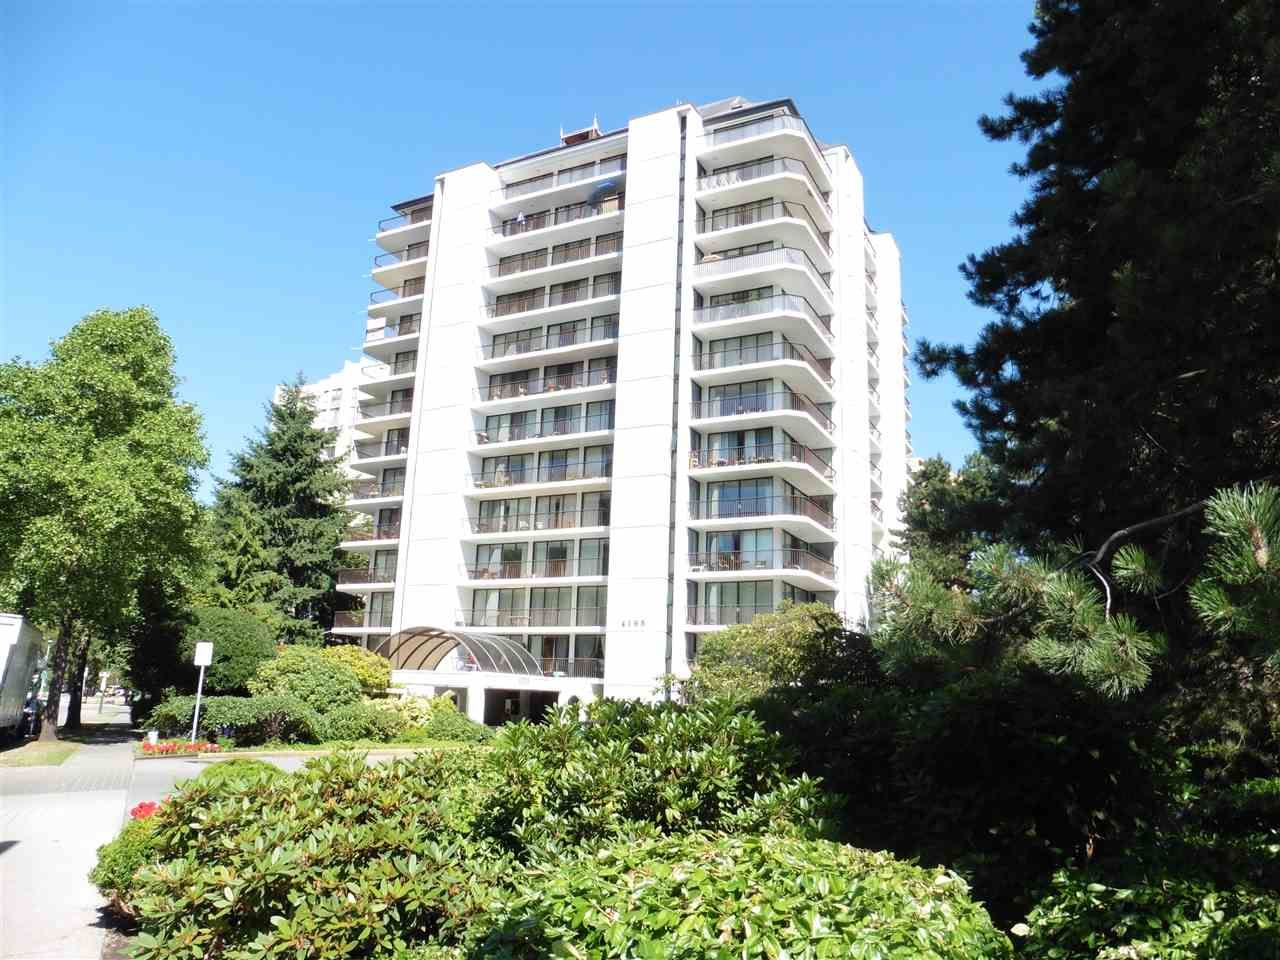 """Main Photo: 708 4165 MAYWOOD Street in Burnaby: Metrotown Condo for sale in """"PLACE ON THE PARK"""" (Burnaby South)  : MLS®# R2193789"""